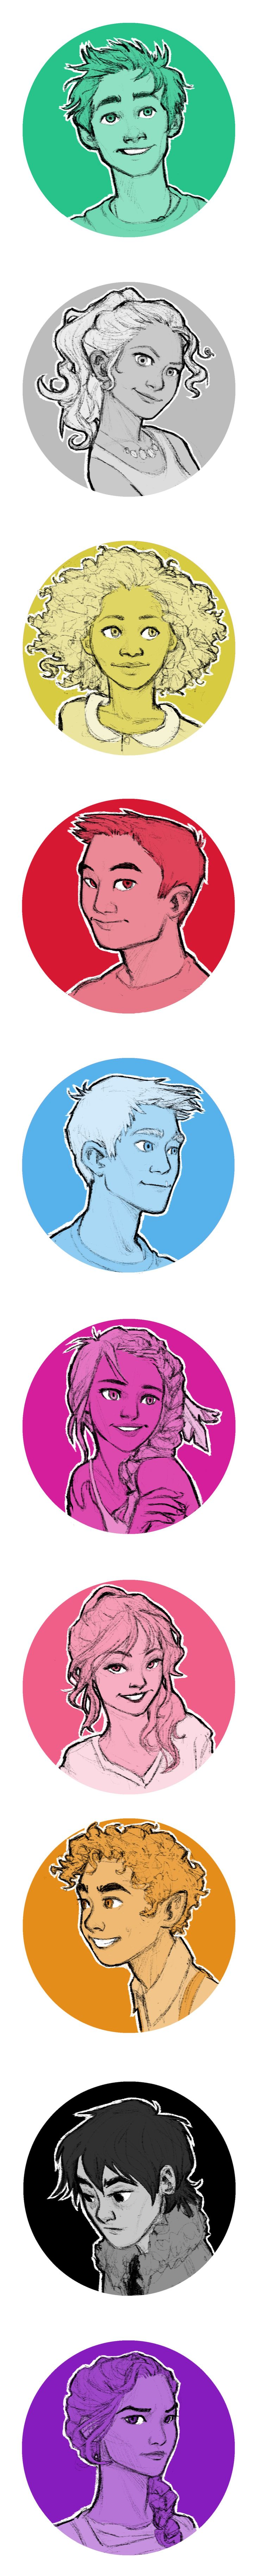 Hey guys I made some avatars of the PJO characters! Inspired by